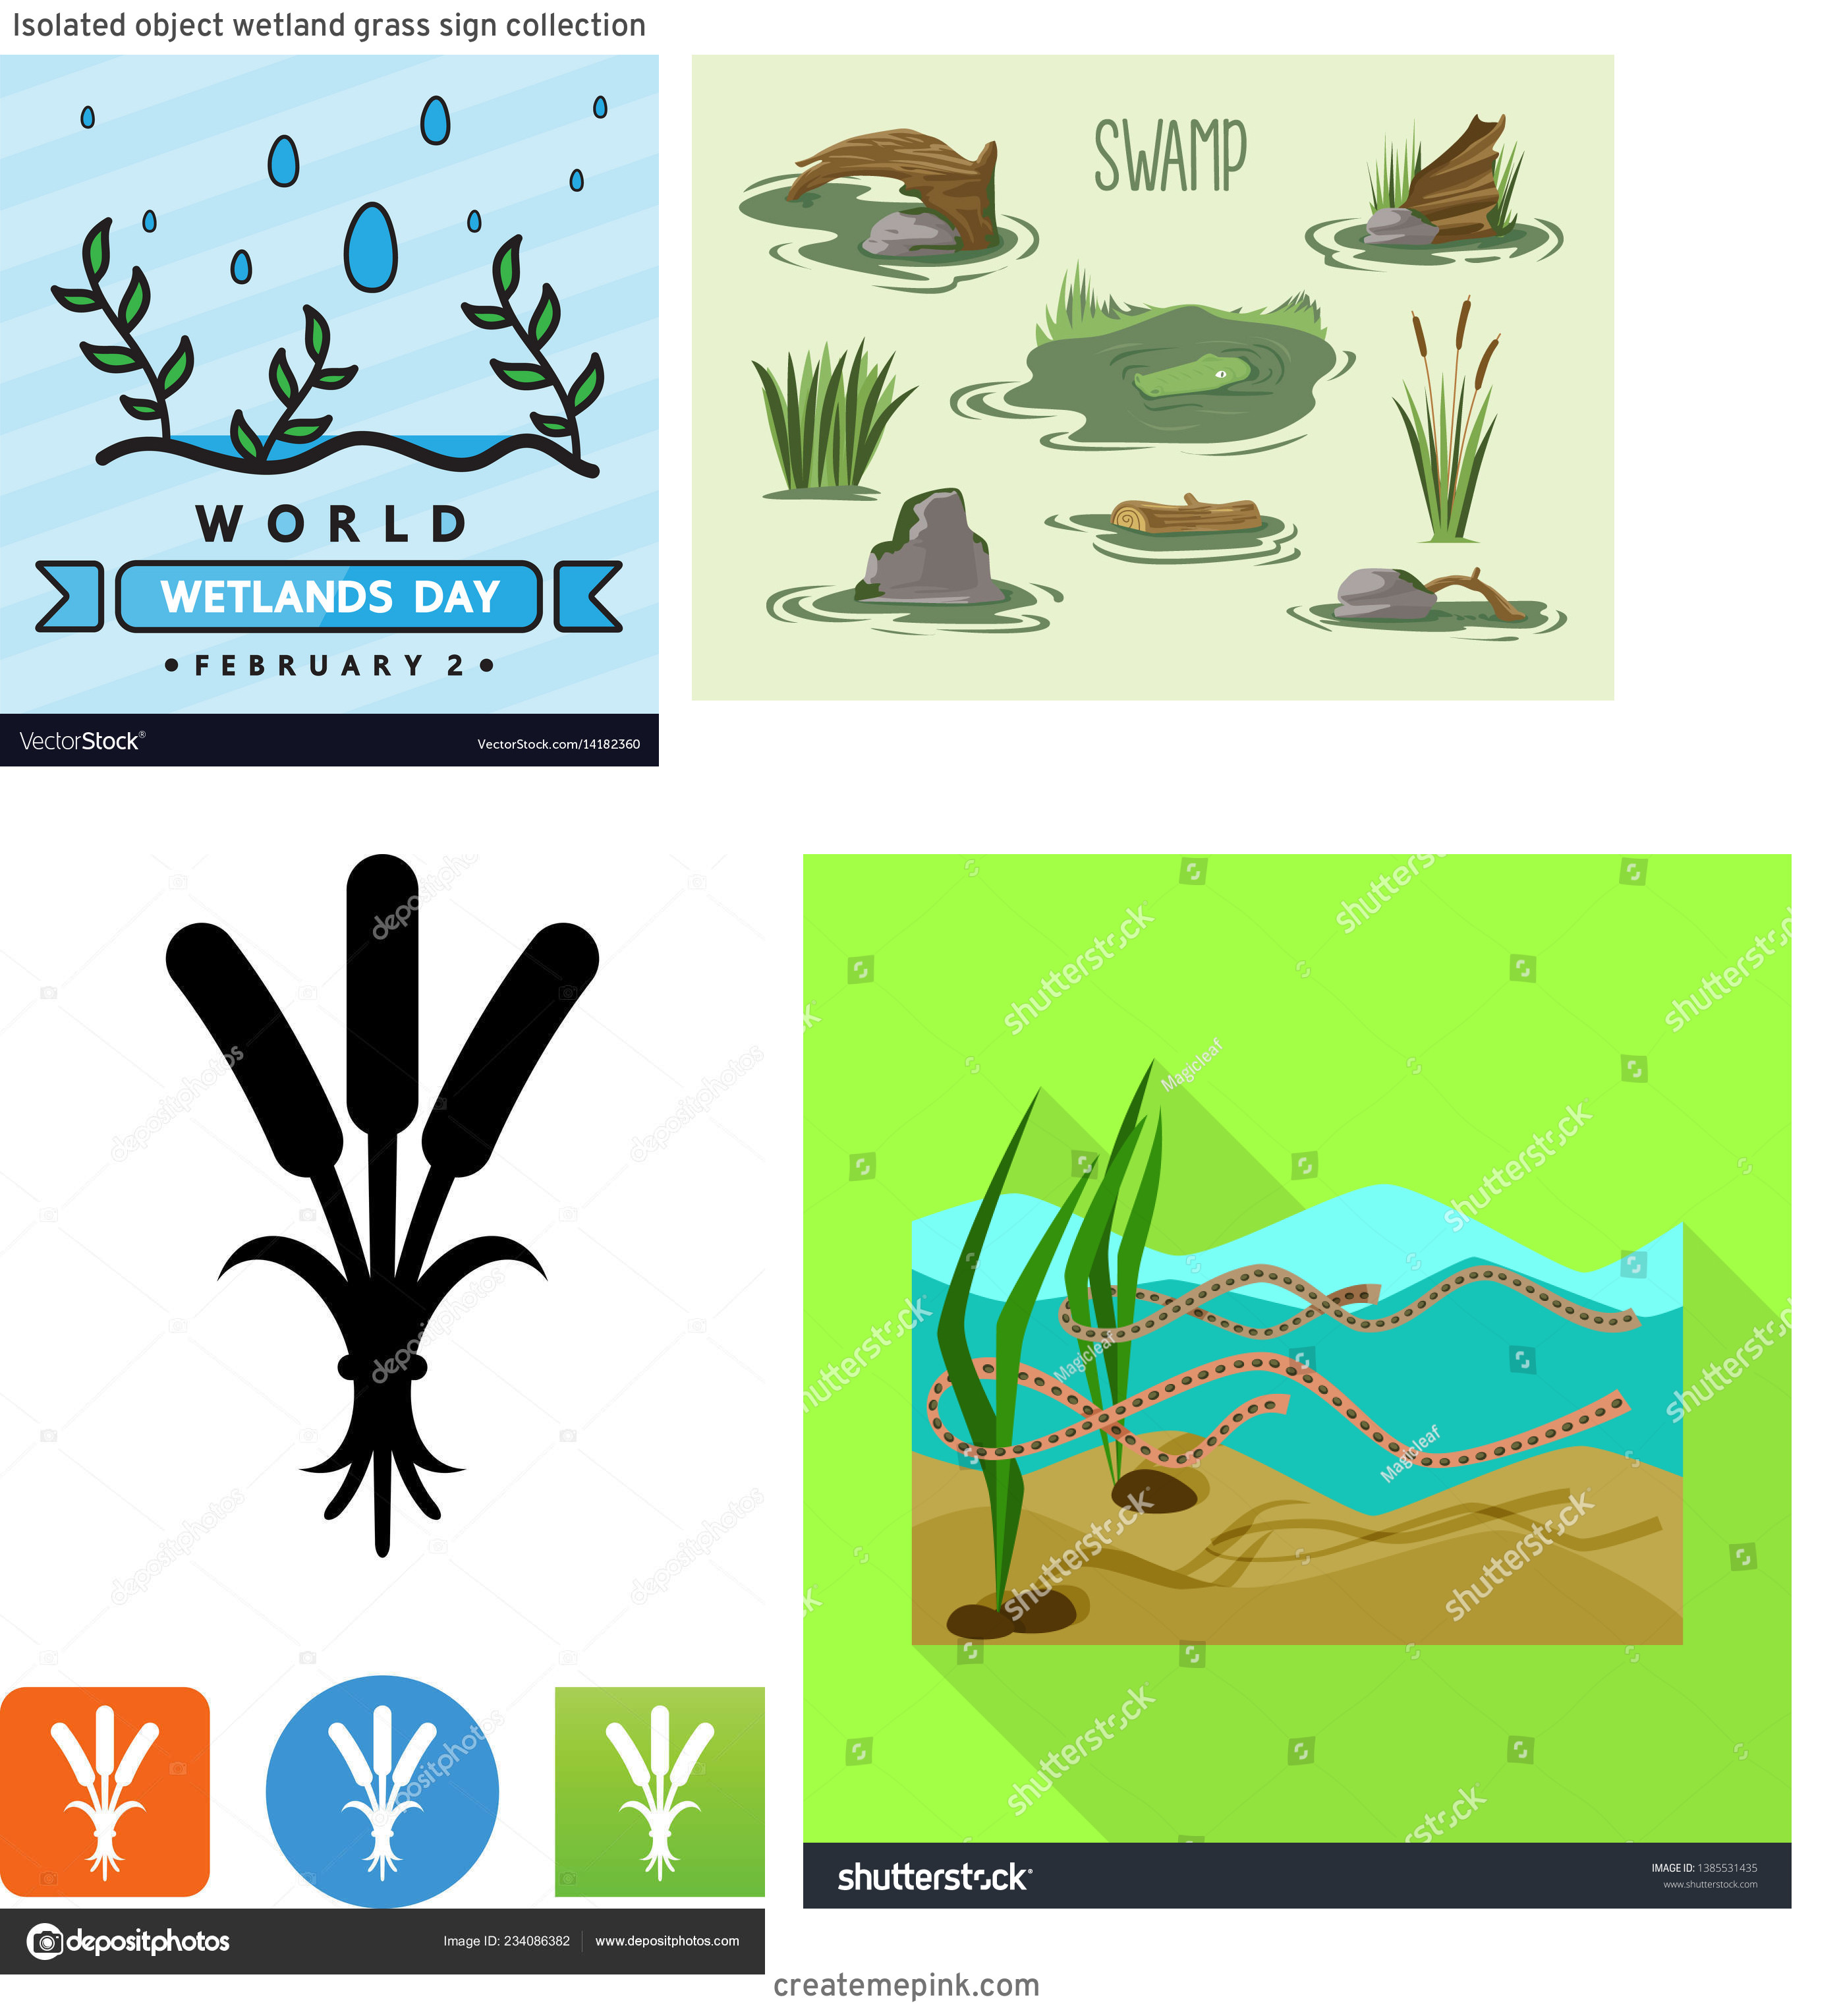 Vector Wetland: Isolated Object Wetland Grass Sign Collection